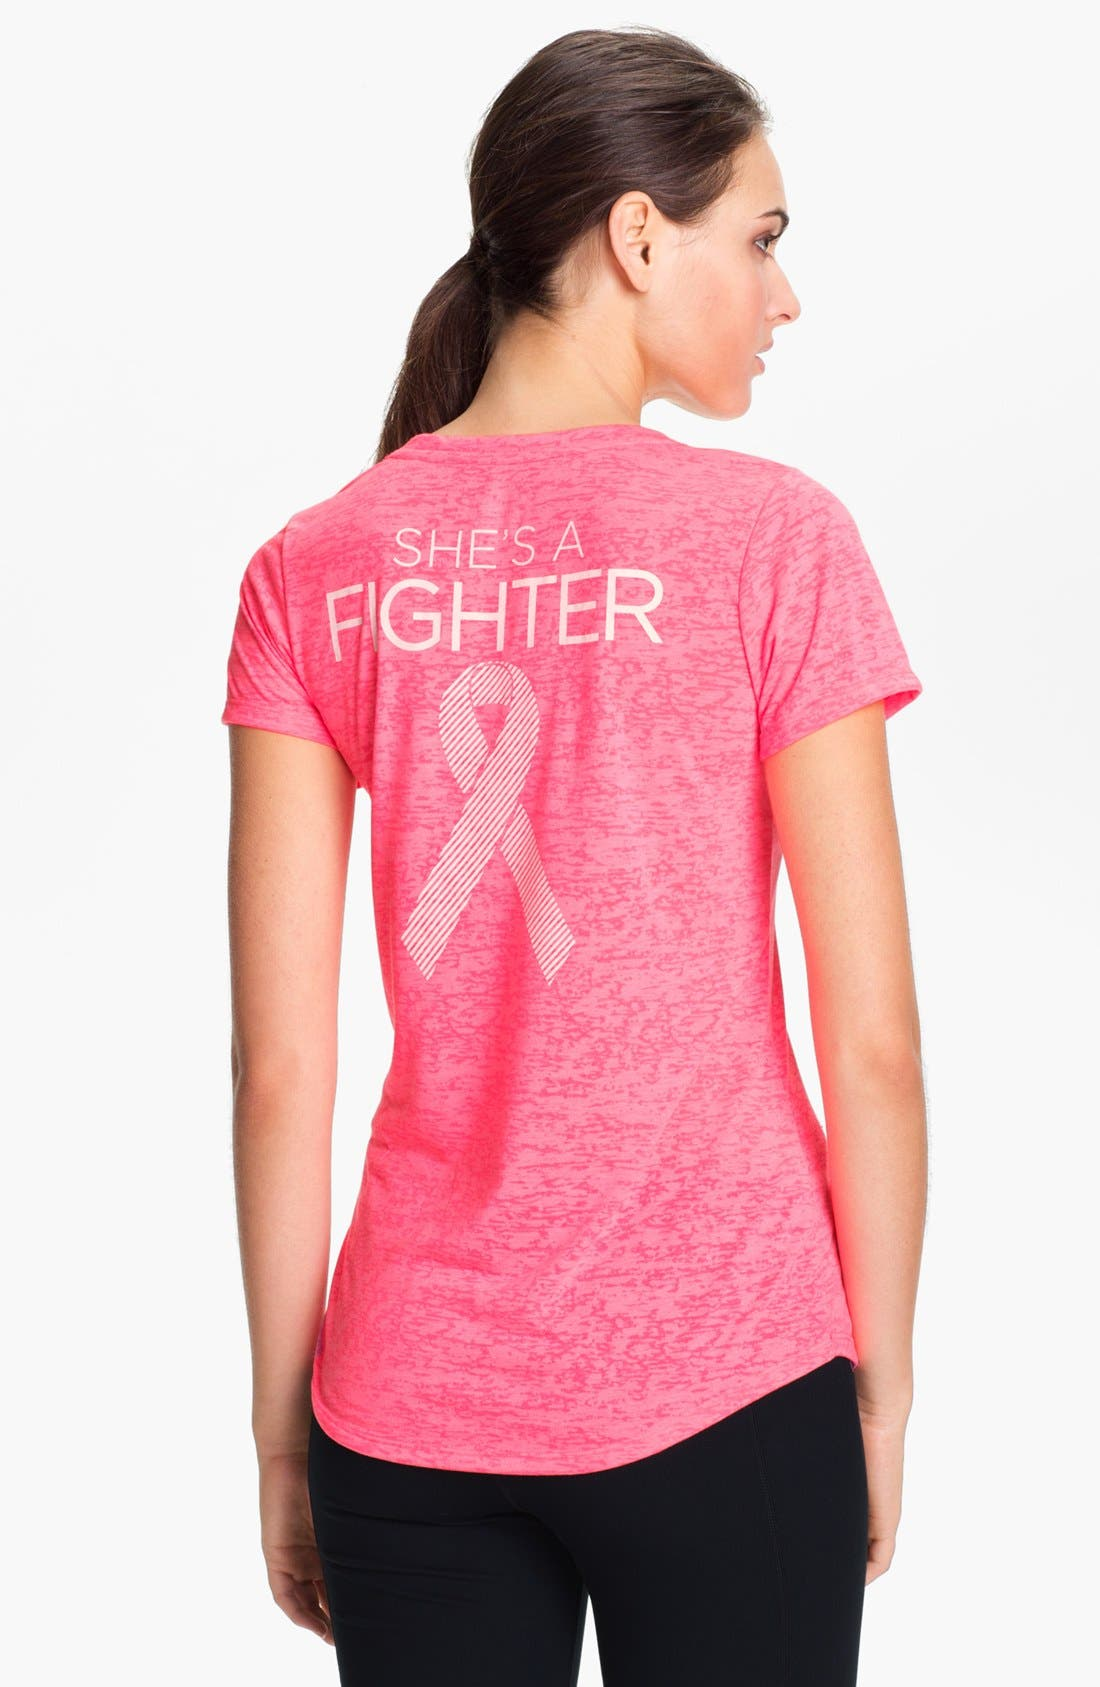 Main Image - Under Armour 'Power in Pink - She's a Fighter' Tee